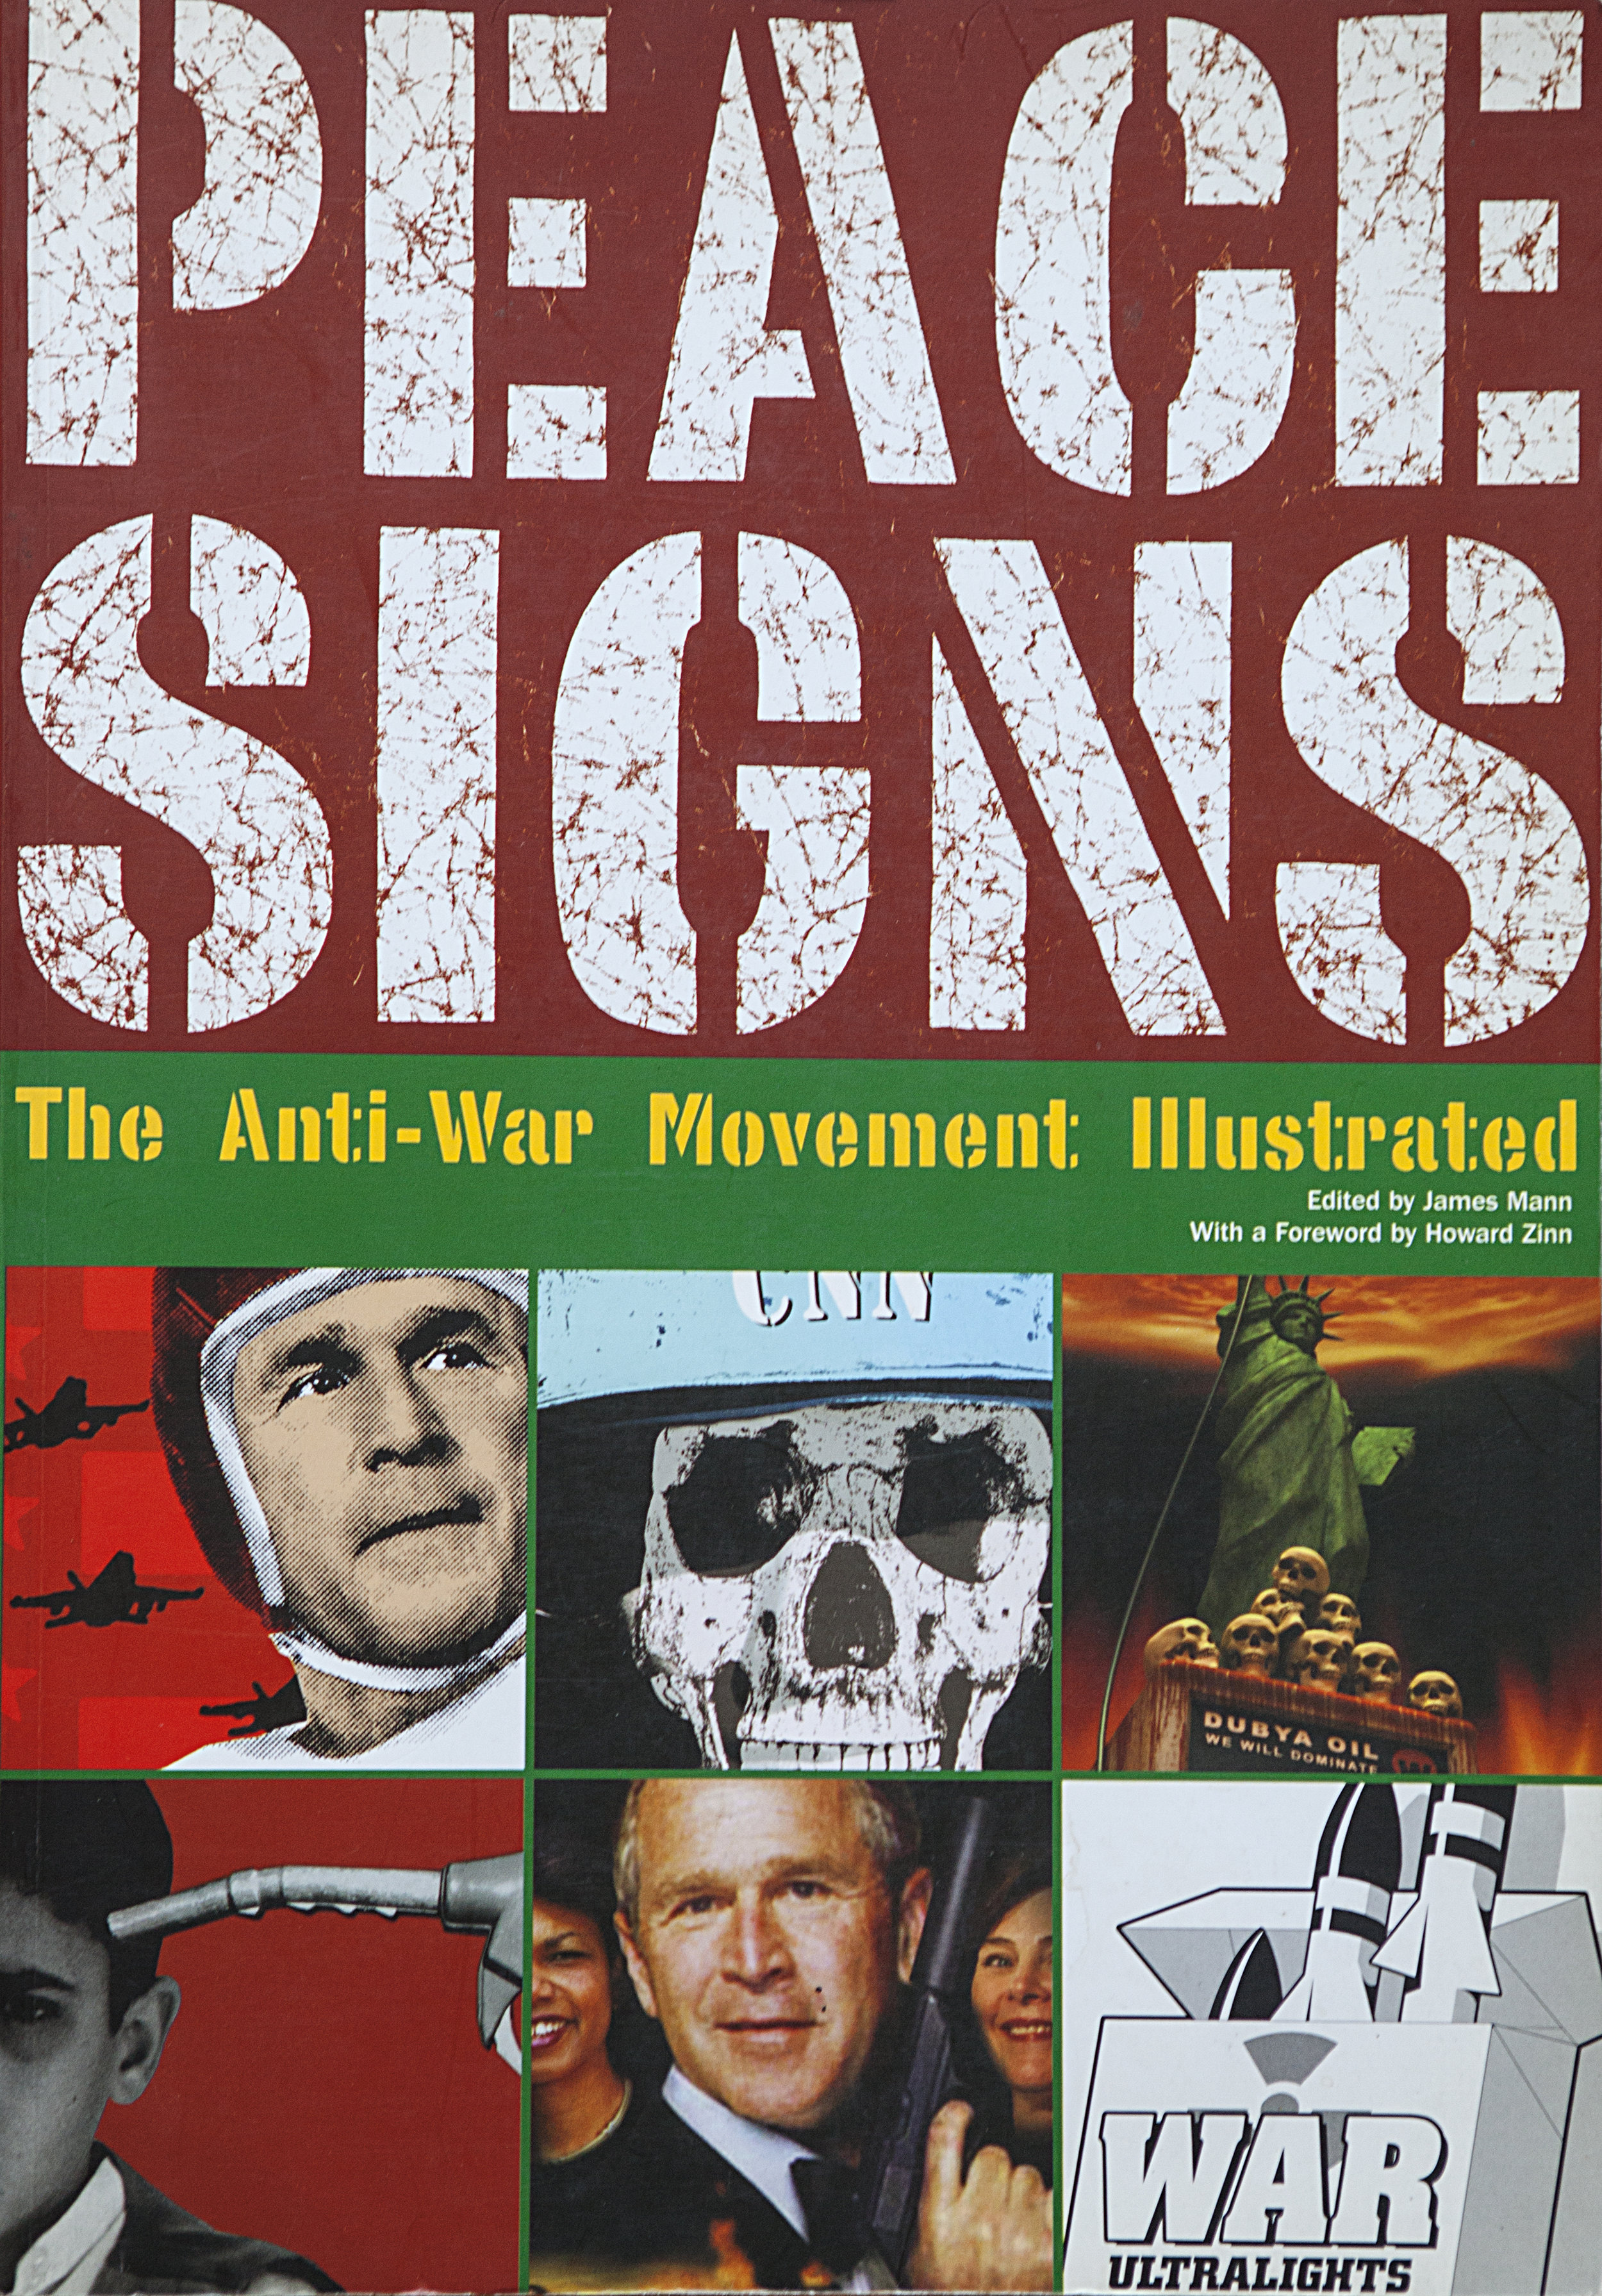 - Peace Signs: The Anti-War Movement IllustratedPublisher: Edition Olms; First Edition edition (April 1, 2004)by James Mann (Editor), Howard Zinn (Foreword)Paperback208 pagesProduct Dimensions: 12.9 x 9.2 x 0.9 inchesLanguage: English, French, German, SpanishISBN-10: 8181580095ISBN-13: 978-3283004873ASIN: 3283004870Peace Signs is the ultimate collection of posters and graphics from the war in Iraq—uncensored, political, and thought-provoking. It includes over 200 full color posters from artists and designers from over 22 countries worldwide, featuring artwork by Dellfina and Dellacroix, Seth Tobocman, Shepard Fairey, Winston Smith, Chuck Sperry, Sue Coe, Ward Sutton, Nicole Schuman, and Mike Flugennock.